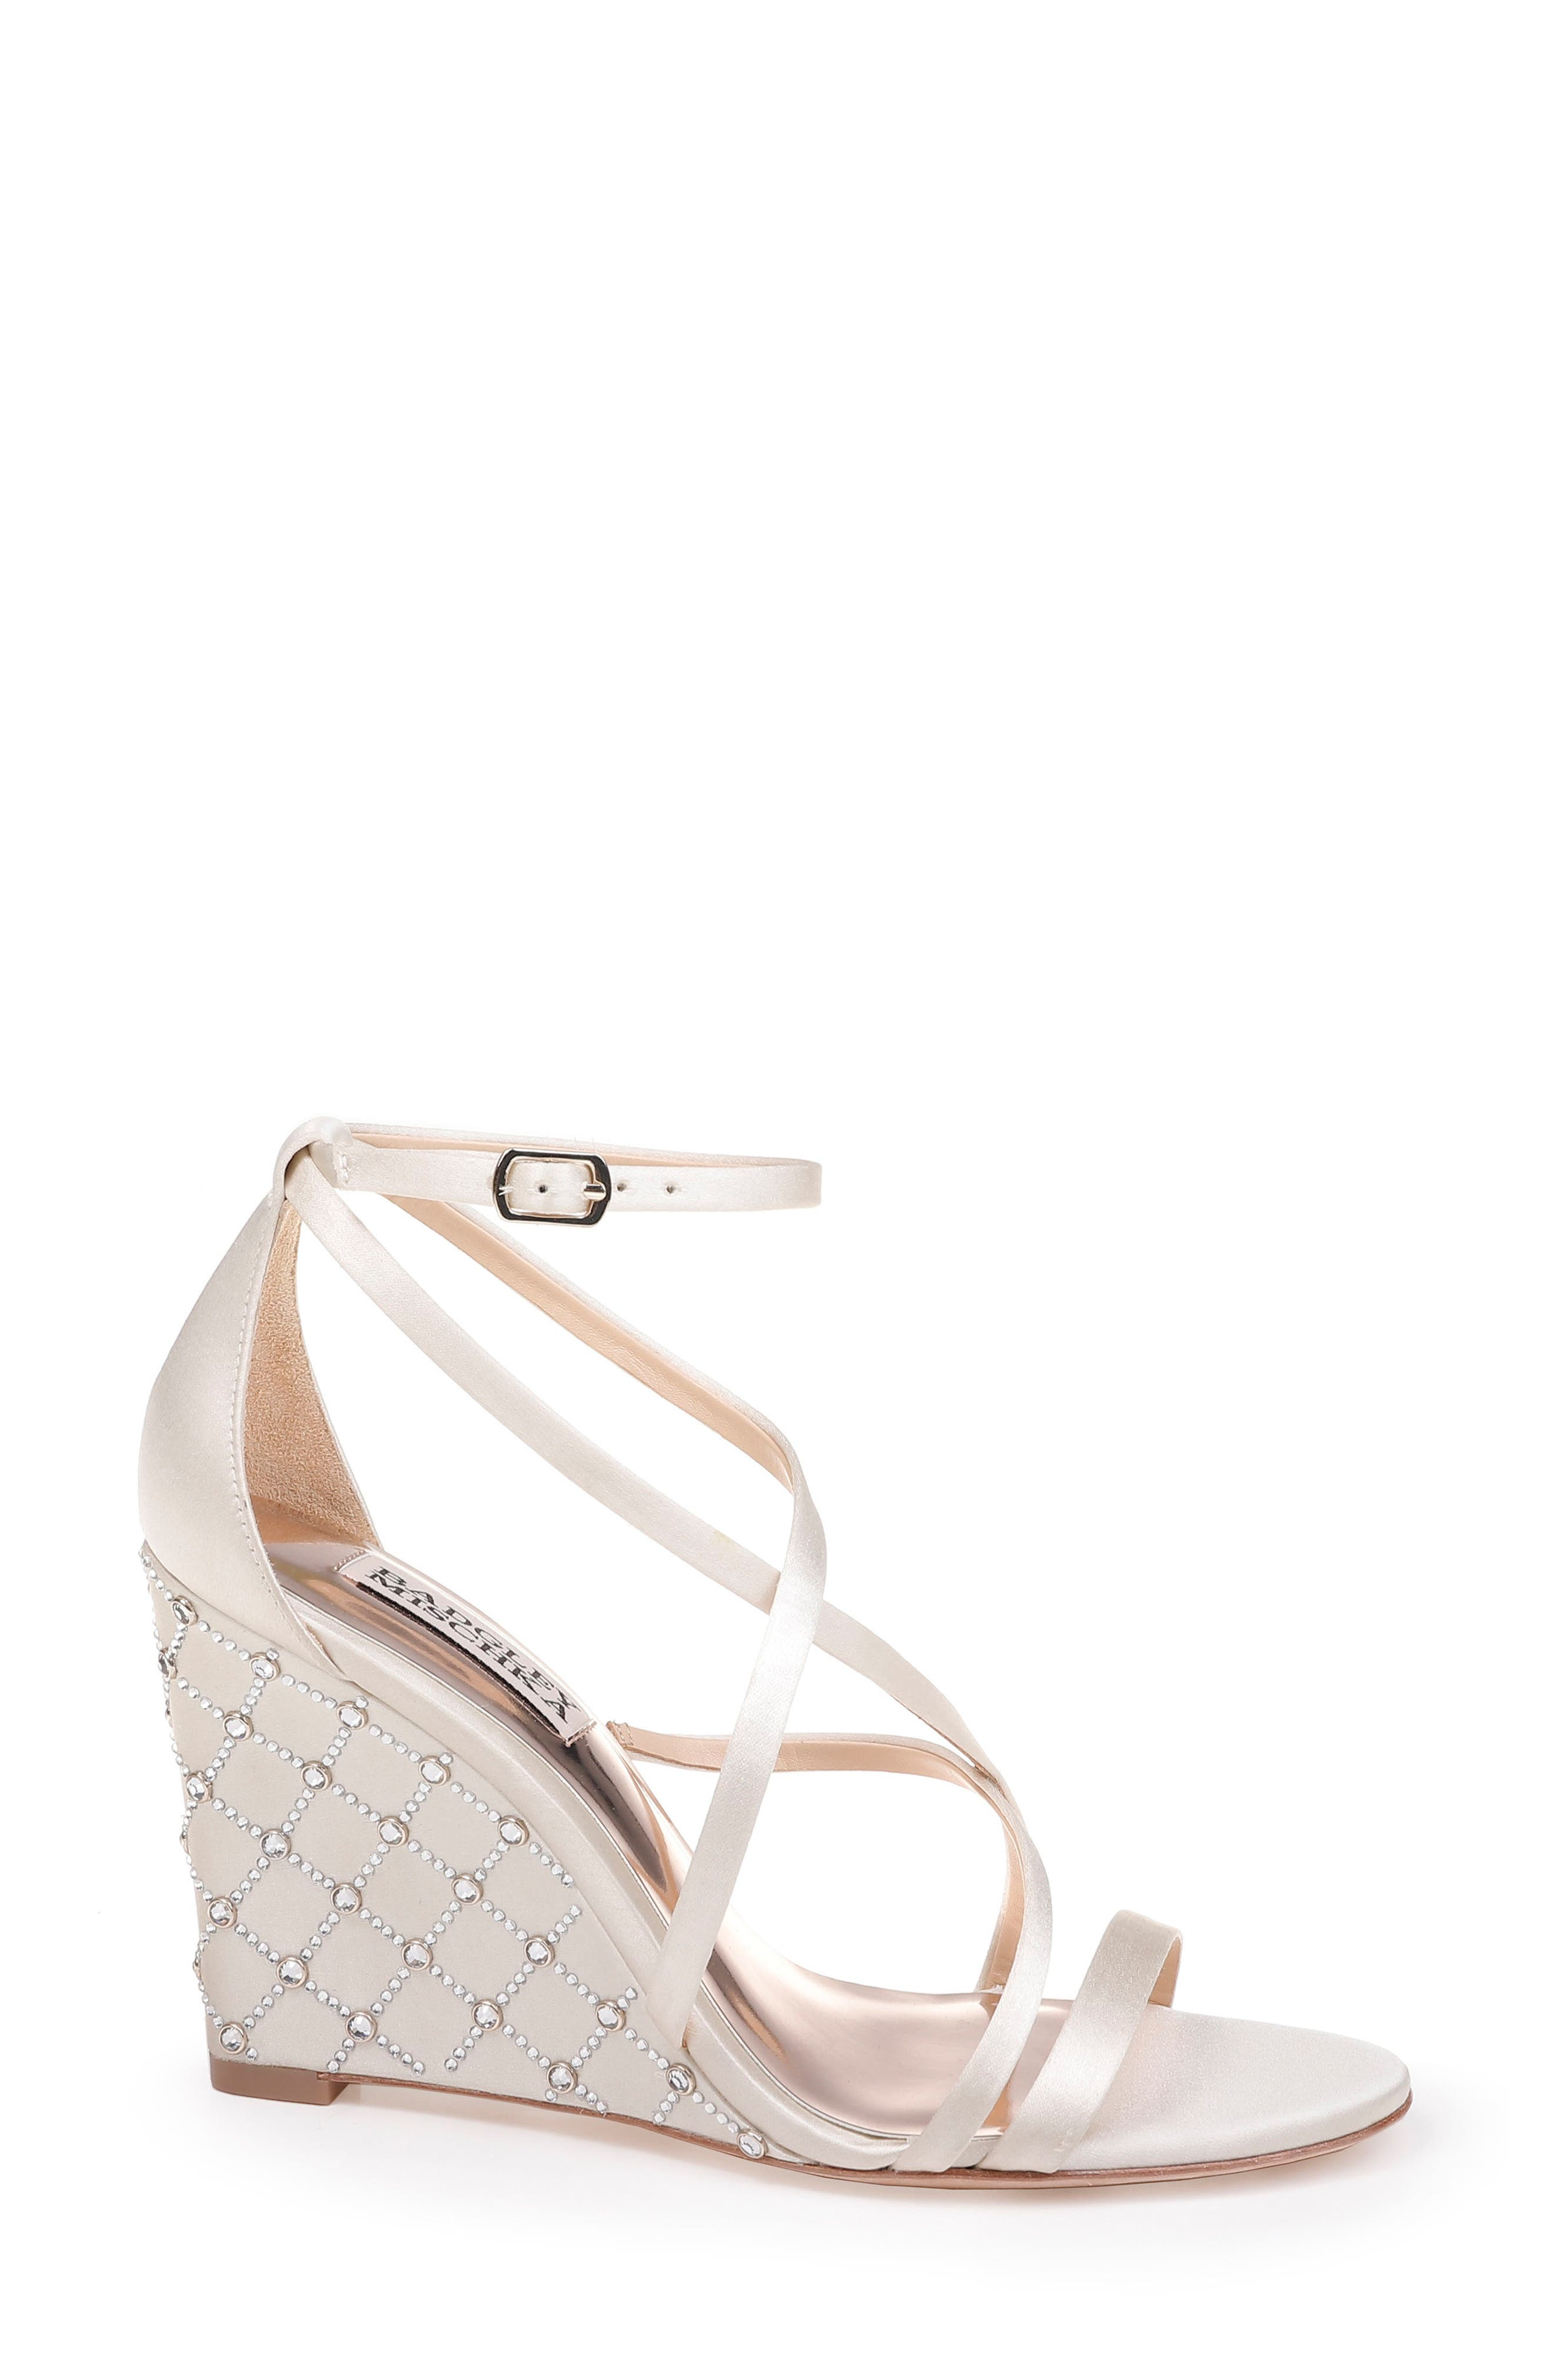 Shelly Strappy Wedge Sandal,                             Alternate thumbnail 3, color,                             Ivory Satin